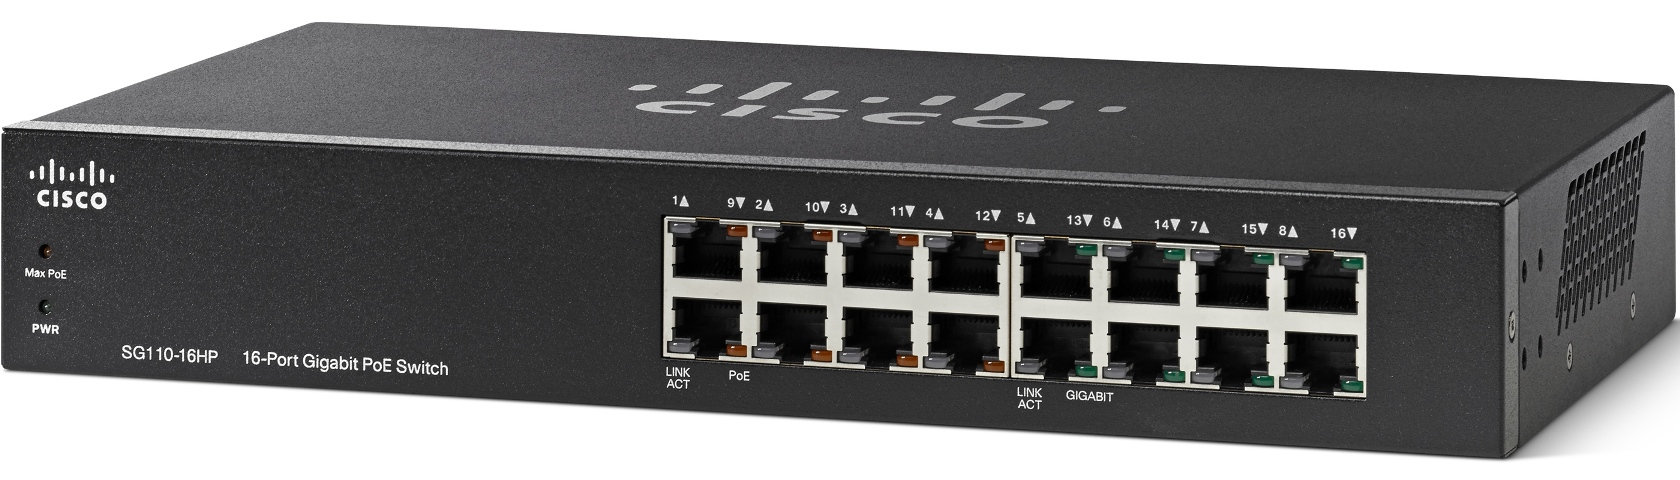 Cisco SG110-16HP 16-Port PoE Gigabit Switch